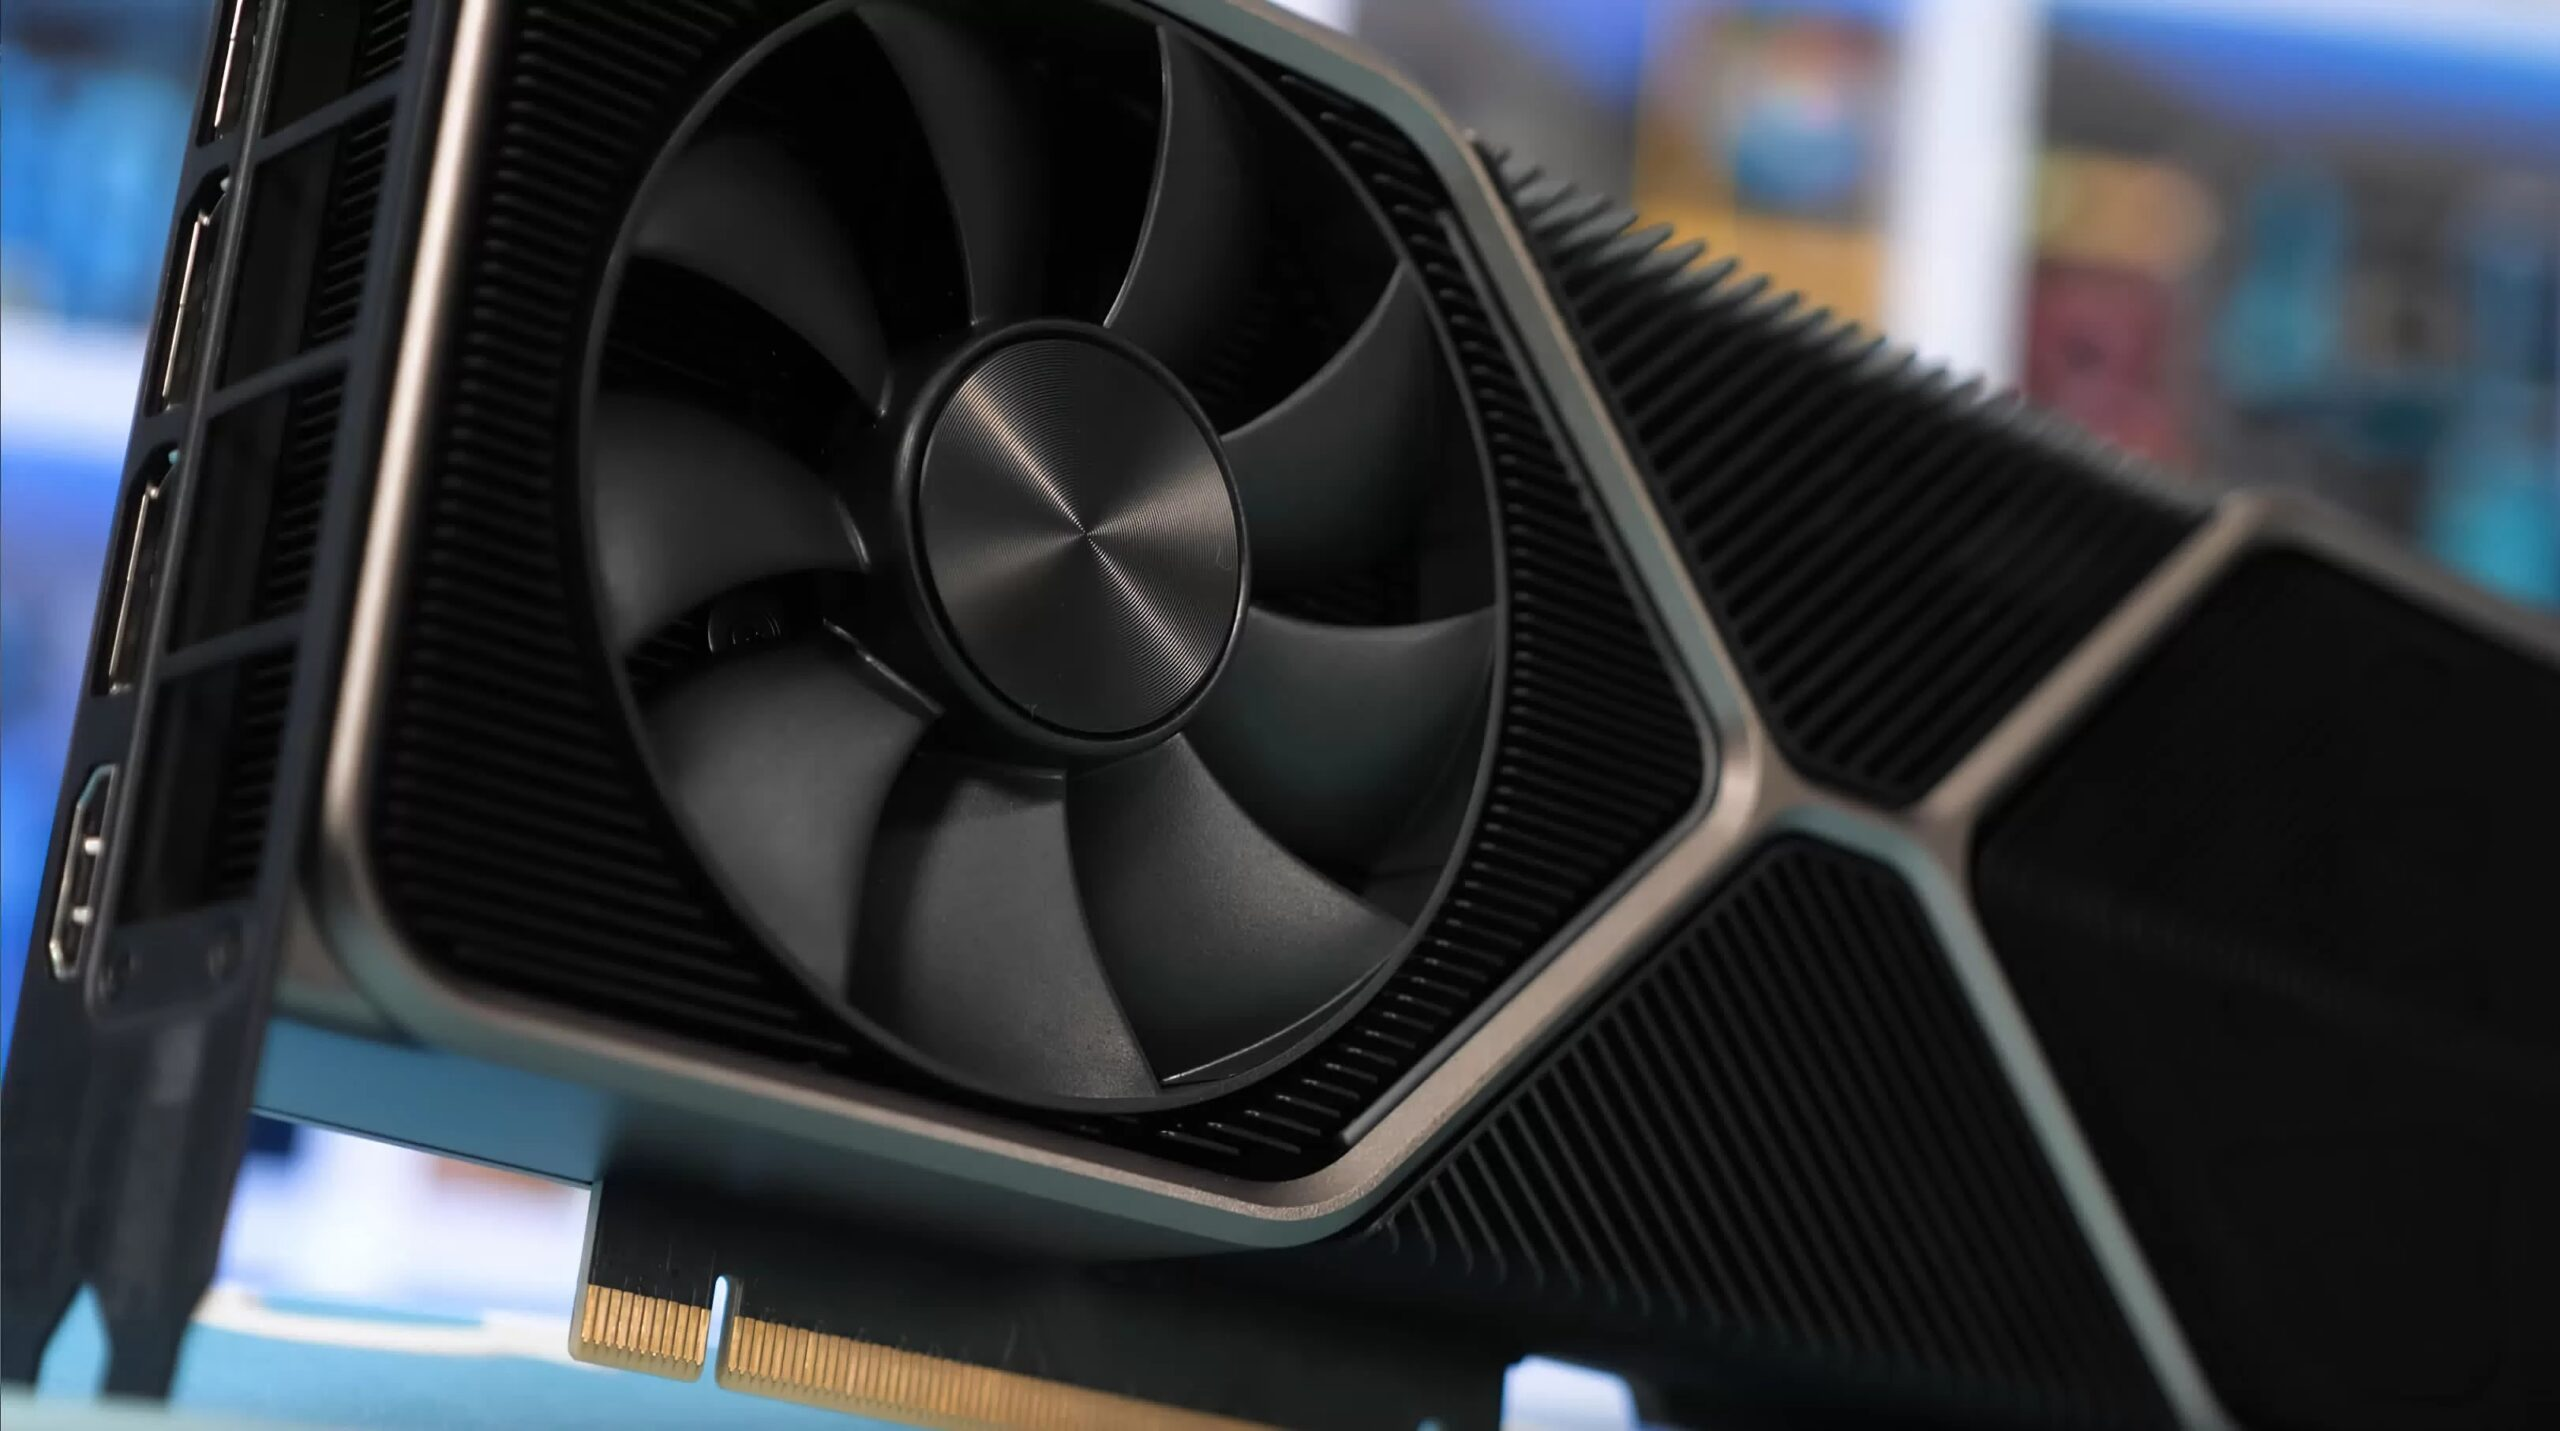 RTX 3080 Ti launch reportedly pushed back to mid-May